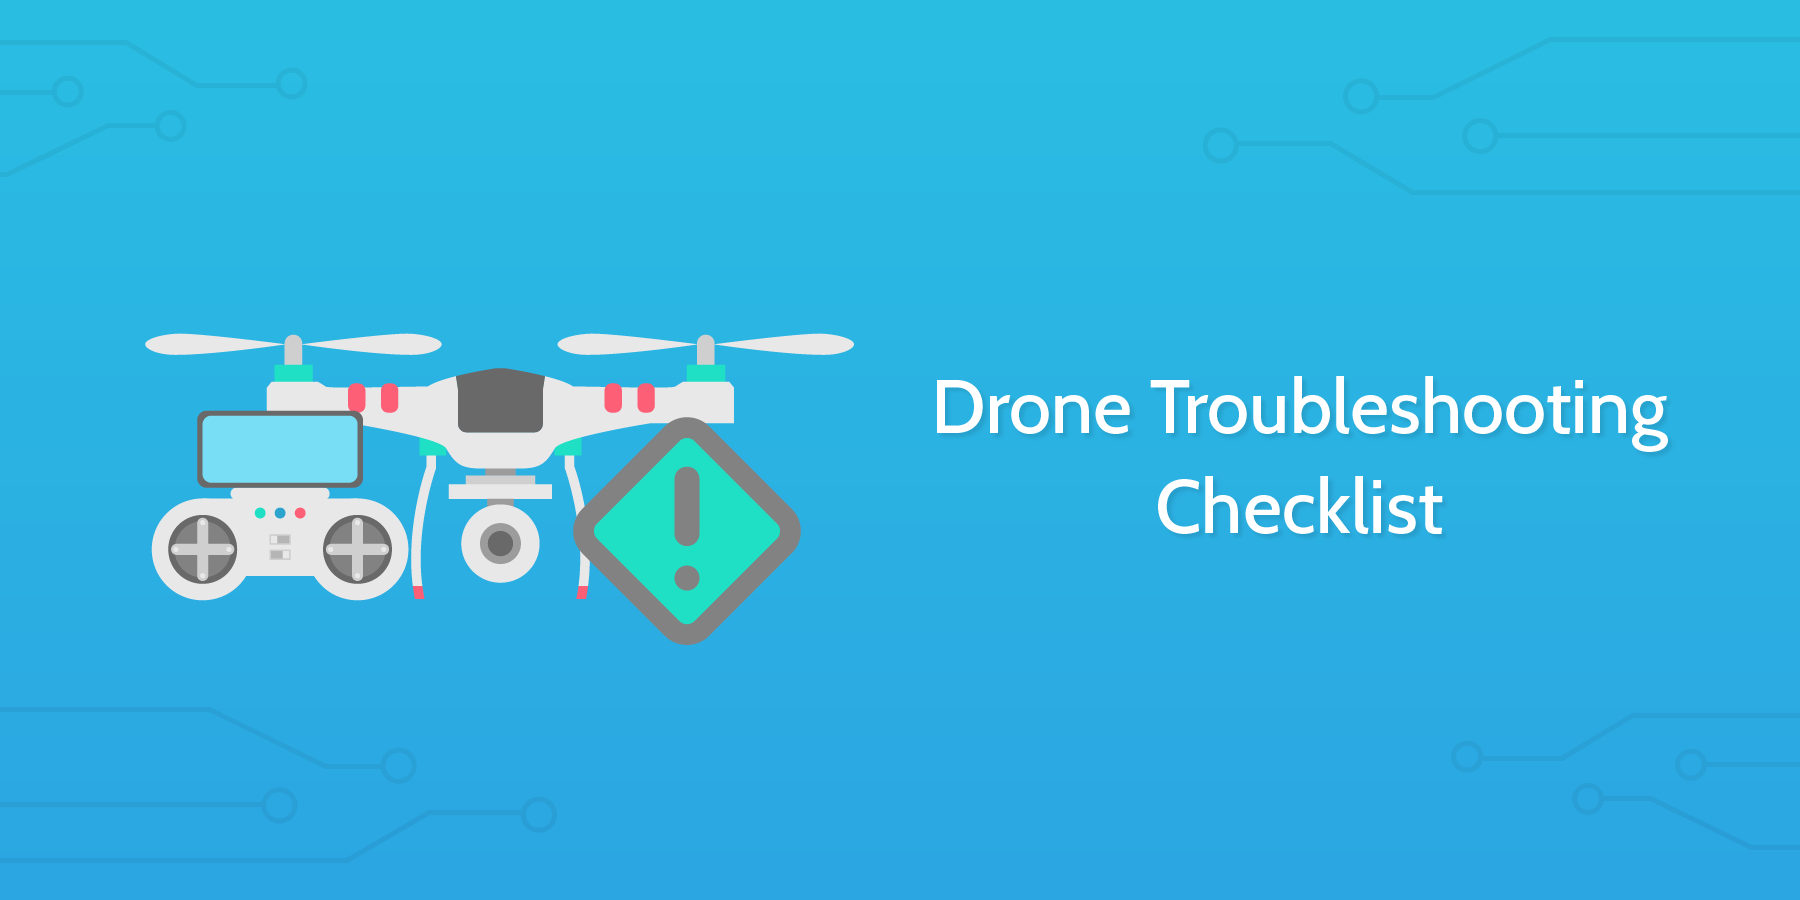 Drone Troubleshooting Checklist